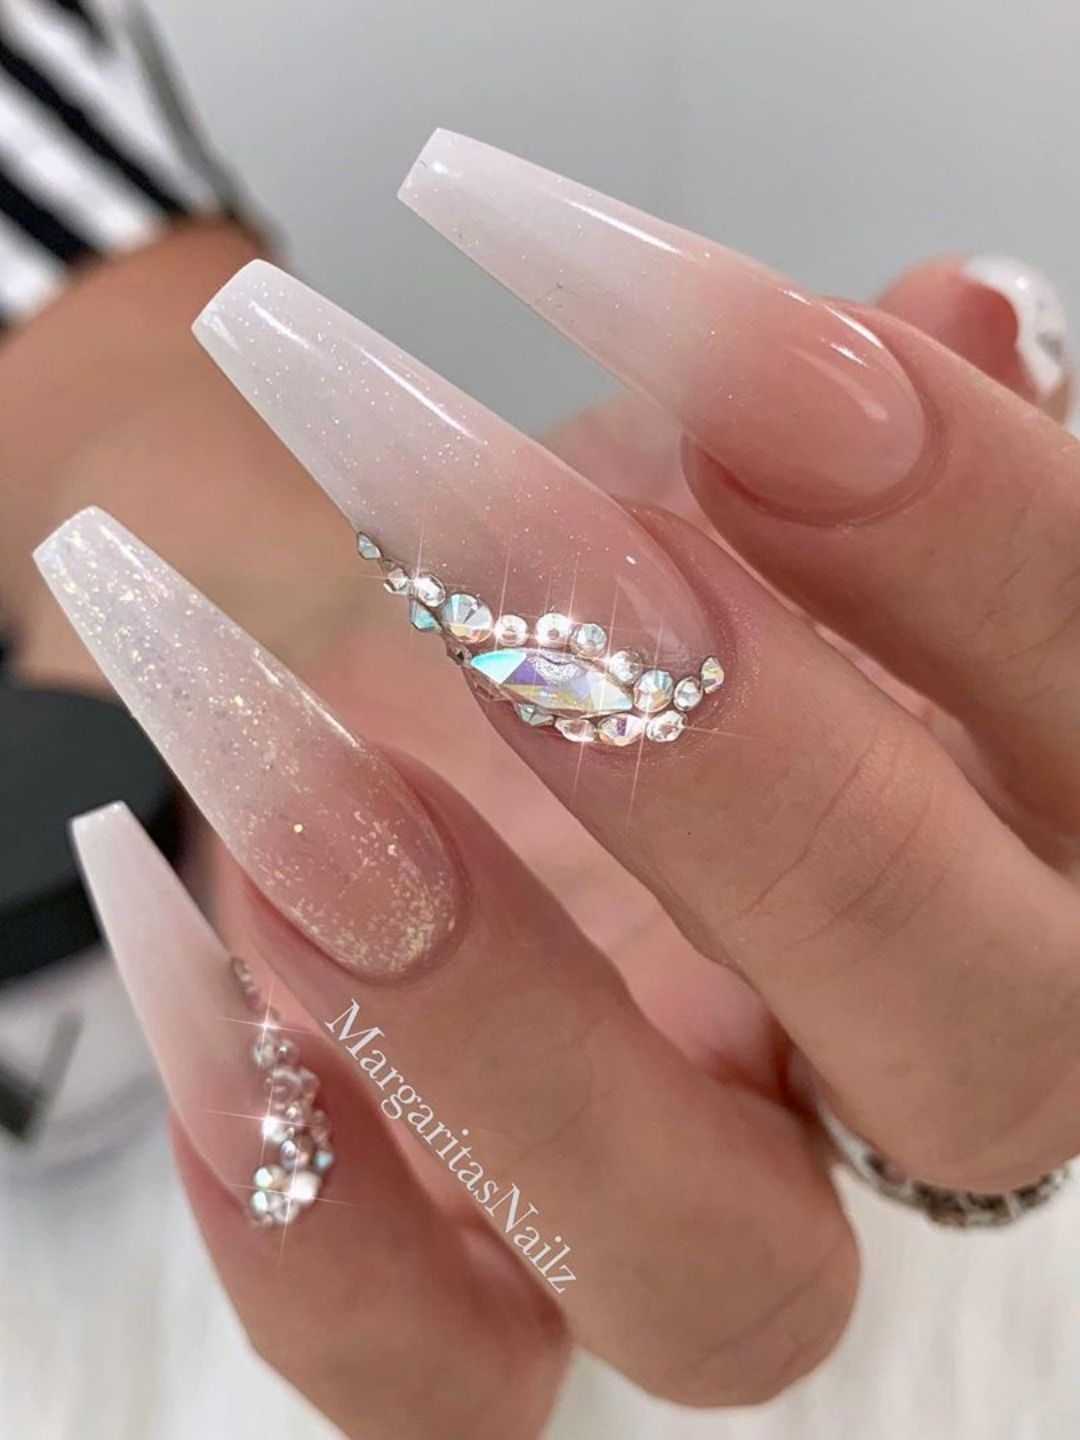 Super Elegant French Ombre Gel Coffin Nails With Glitter And